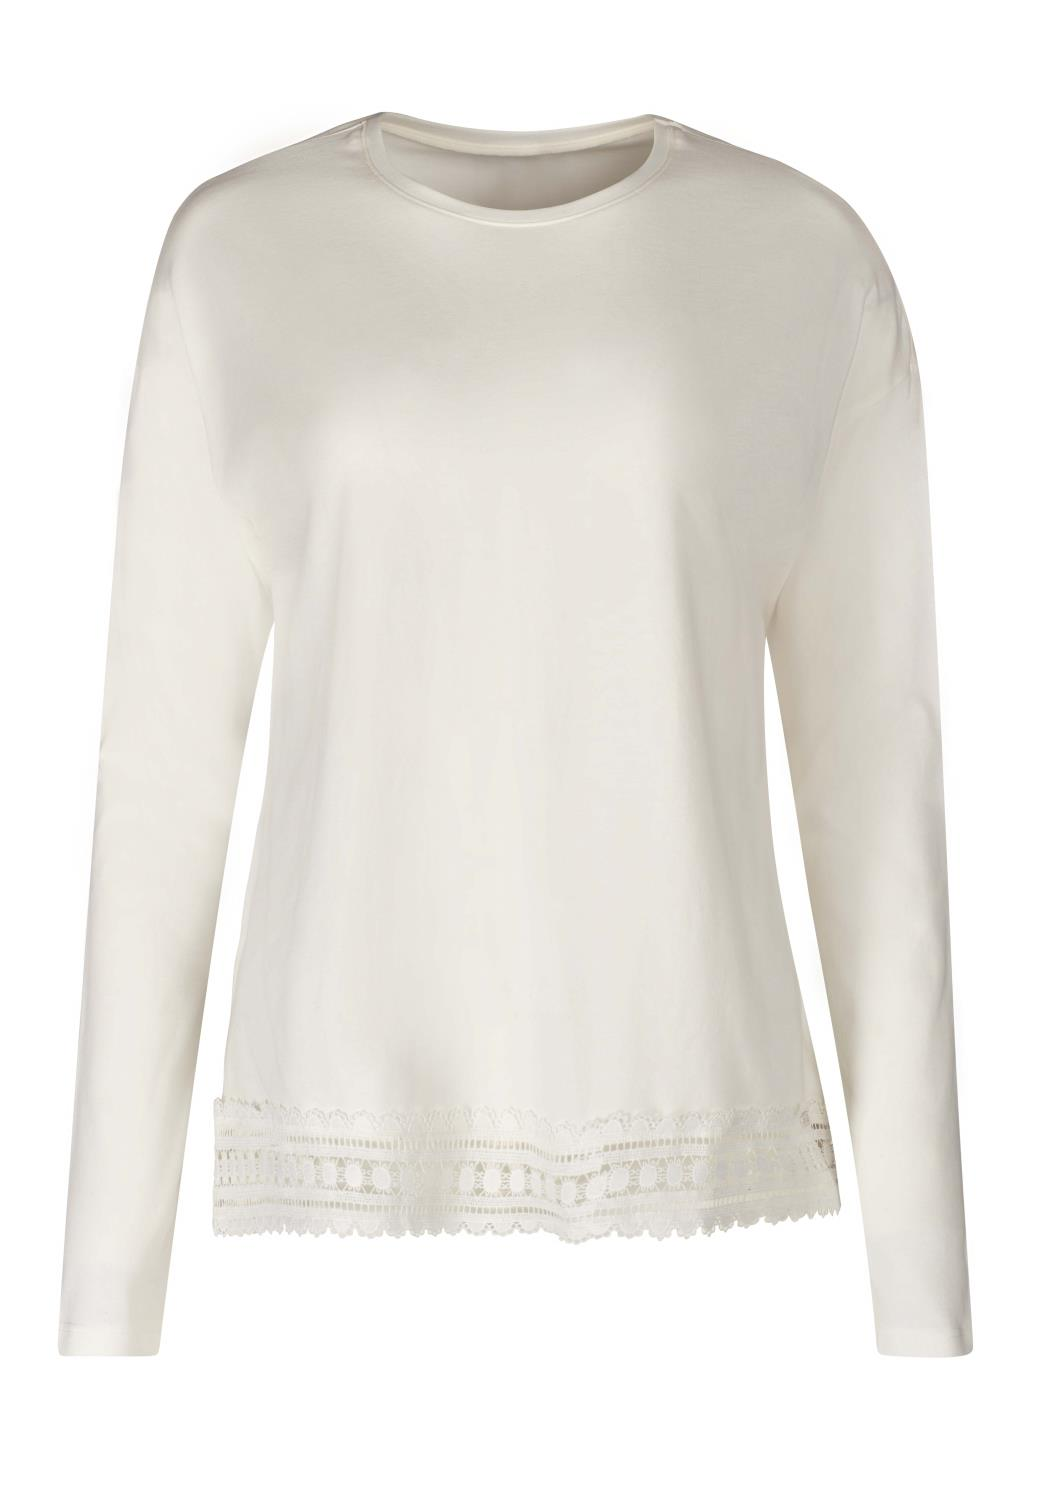 Skiny L. shirt long sleeve, sleep mix & match, ivory